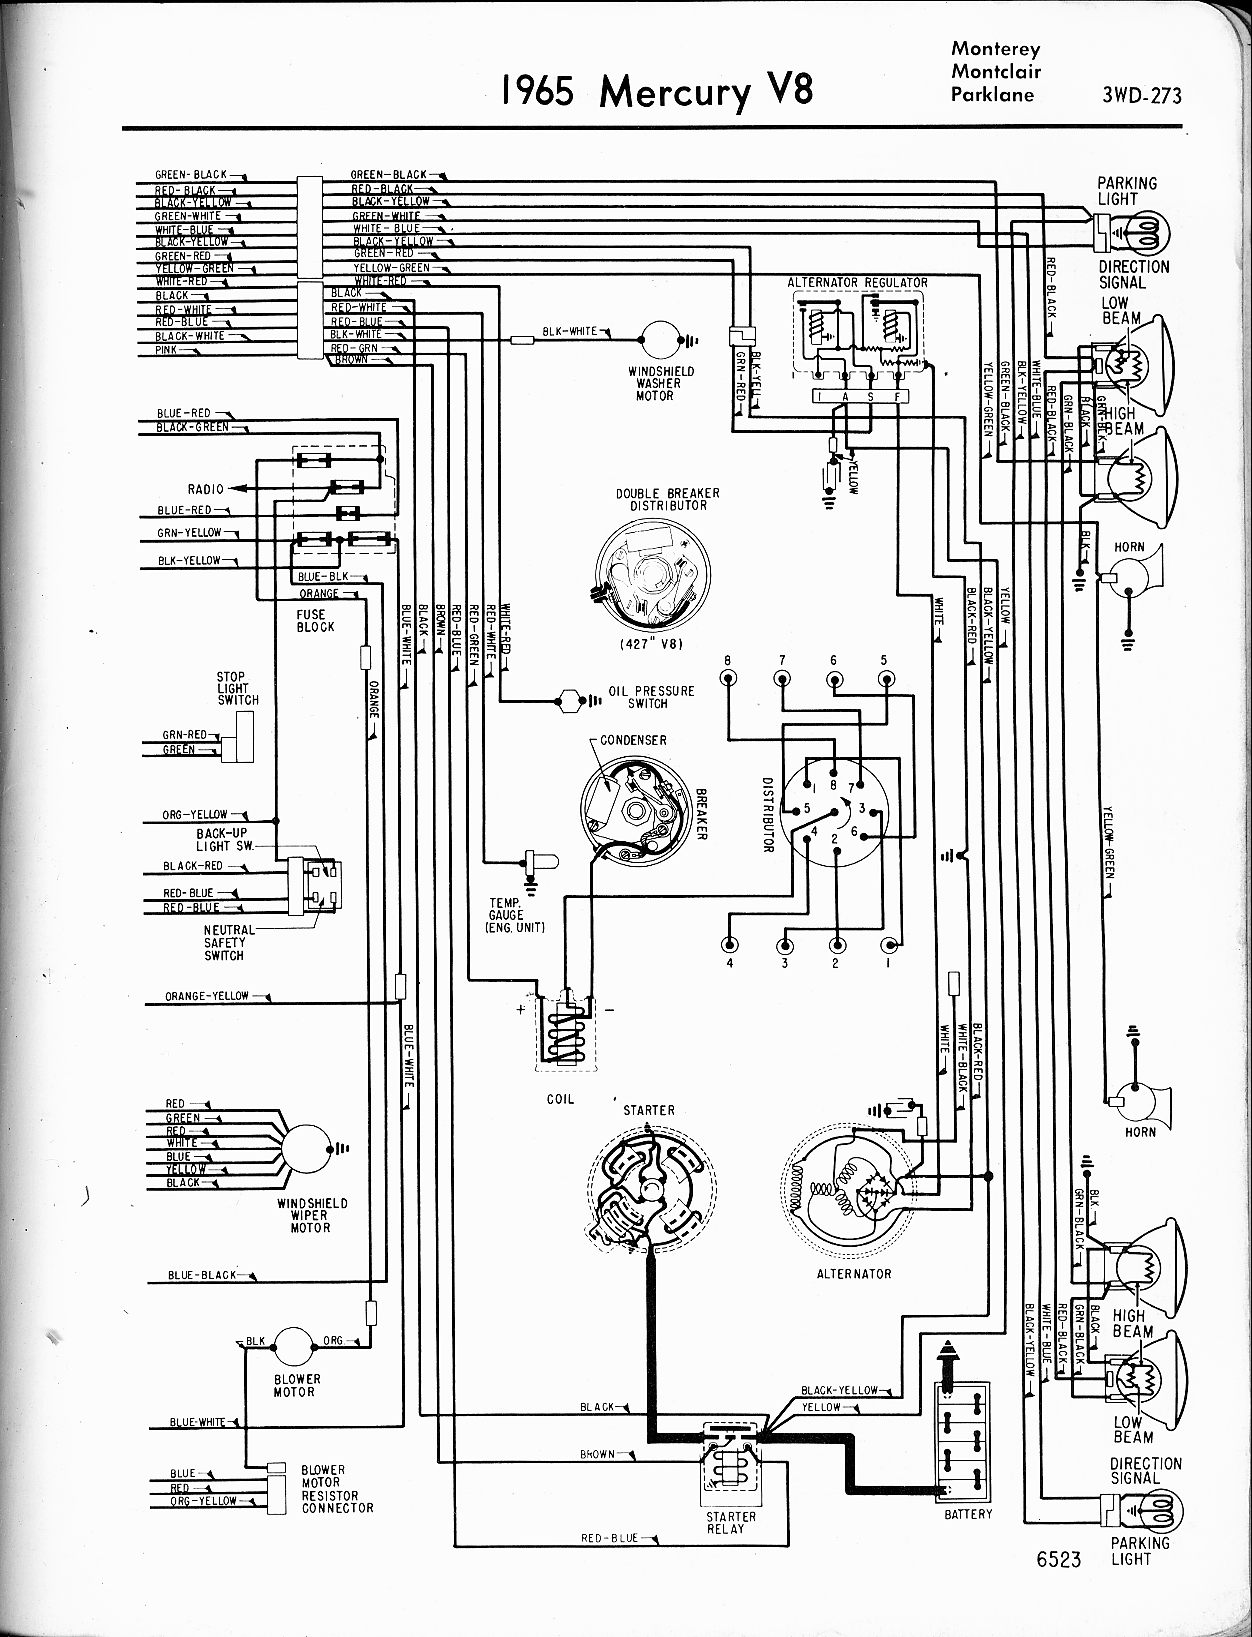 MWire5765 273 mercury wiring diagrams the old car manual project 69 cougar wiring diagram at readyjetset.co